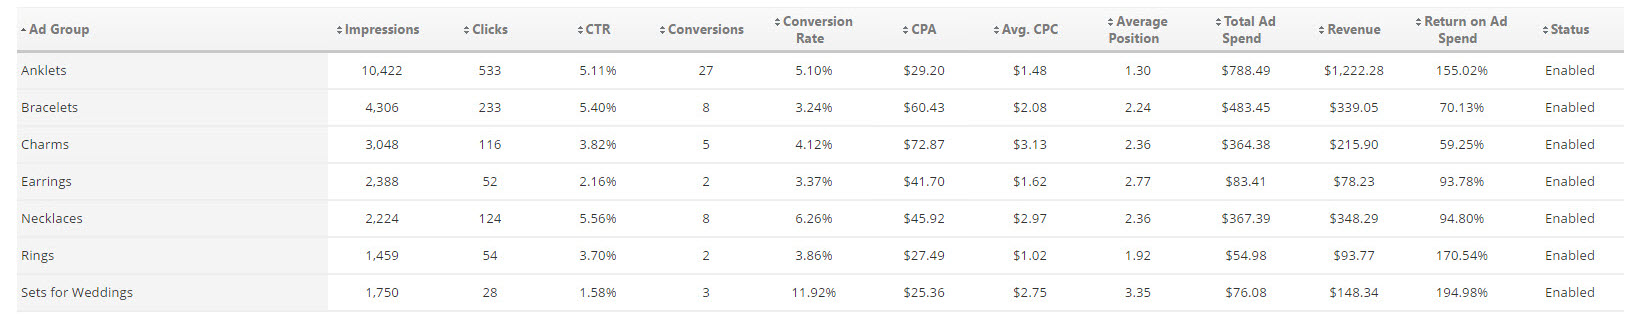 Bing Ads Campaign Metrics Table